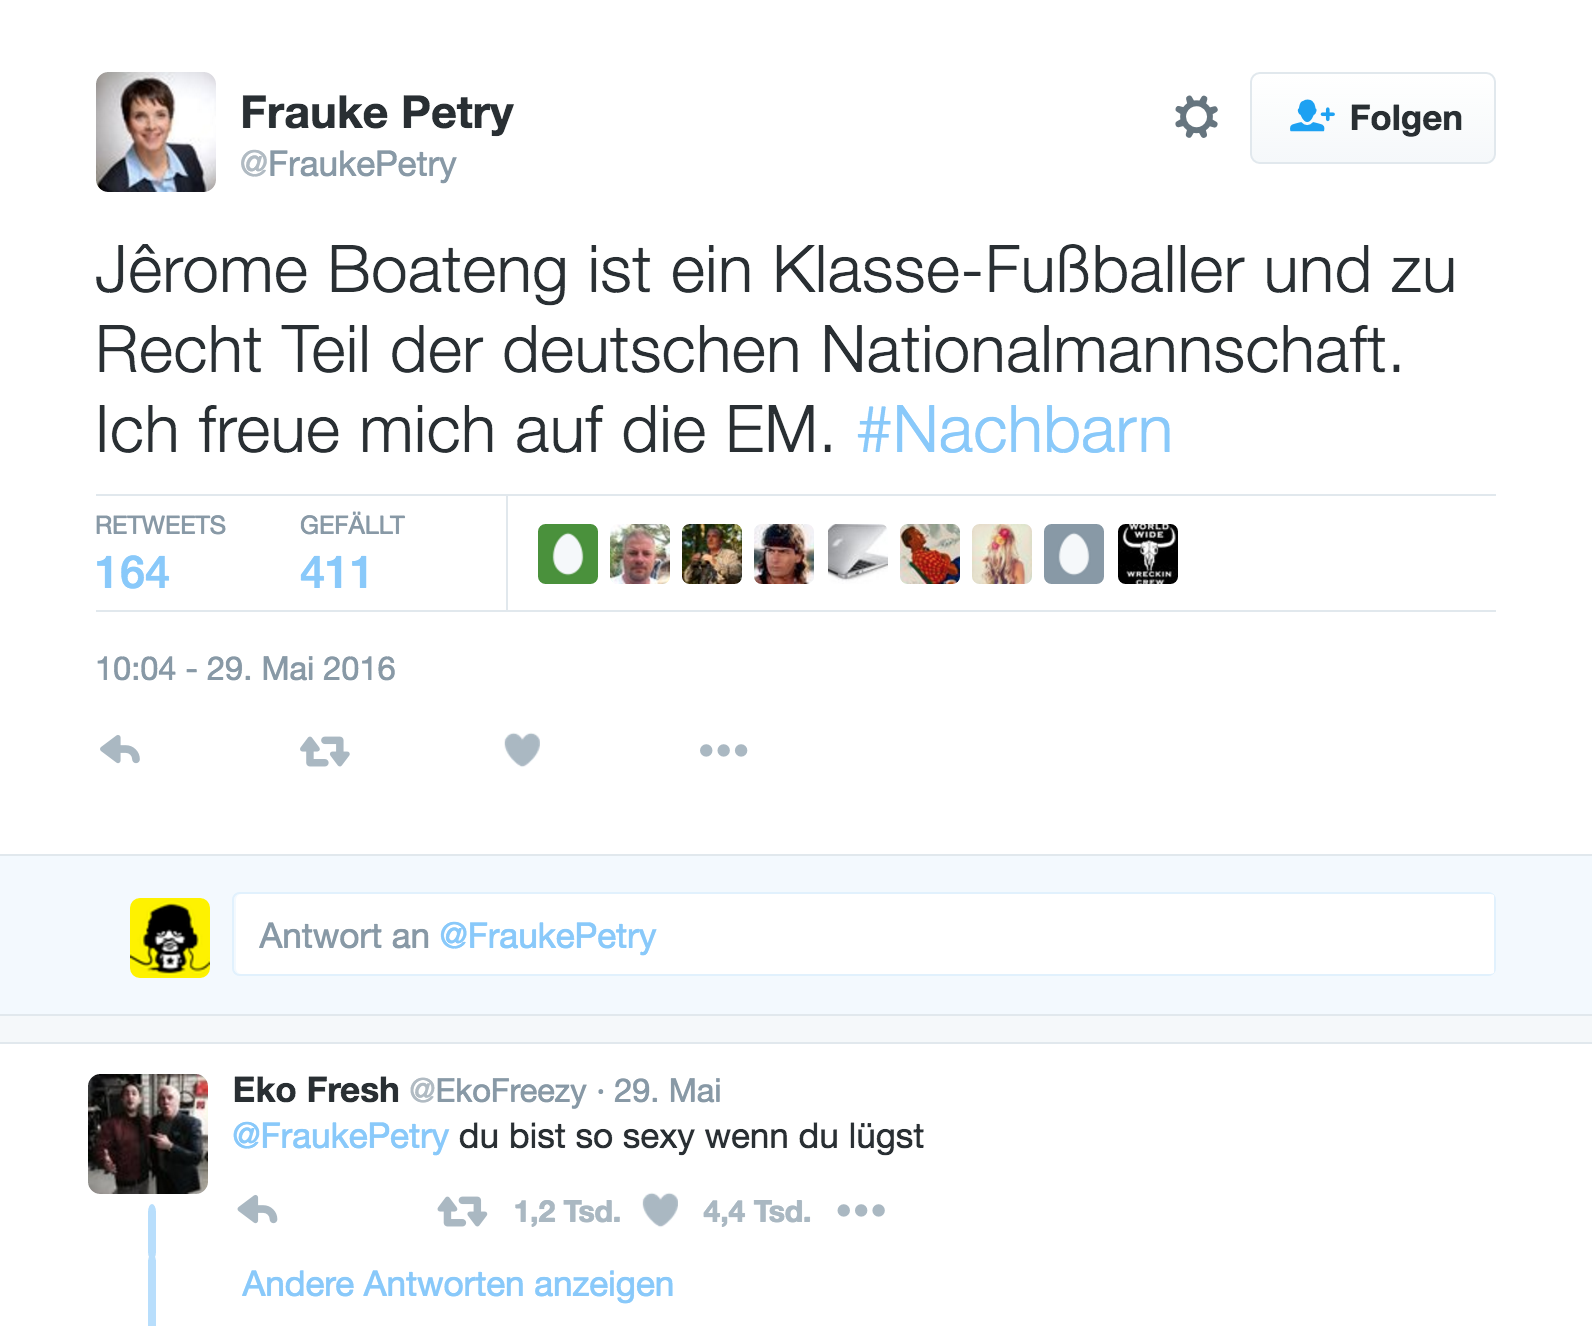 tweet frauke petry jerome boateng nachbarn eko fresh